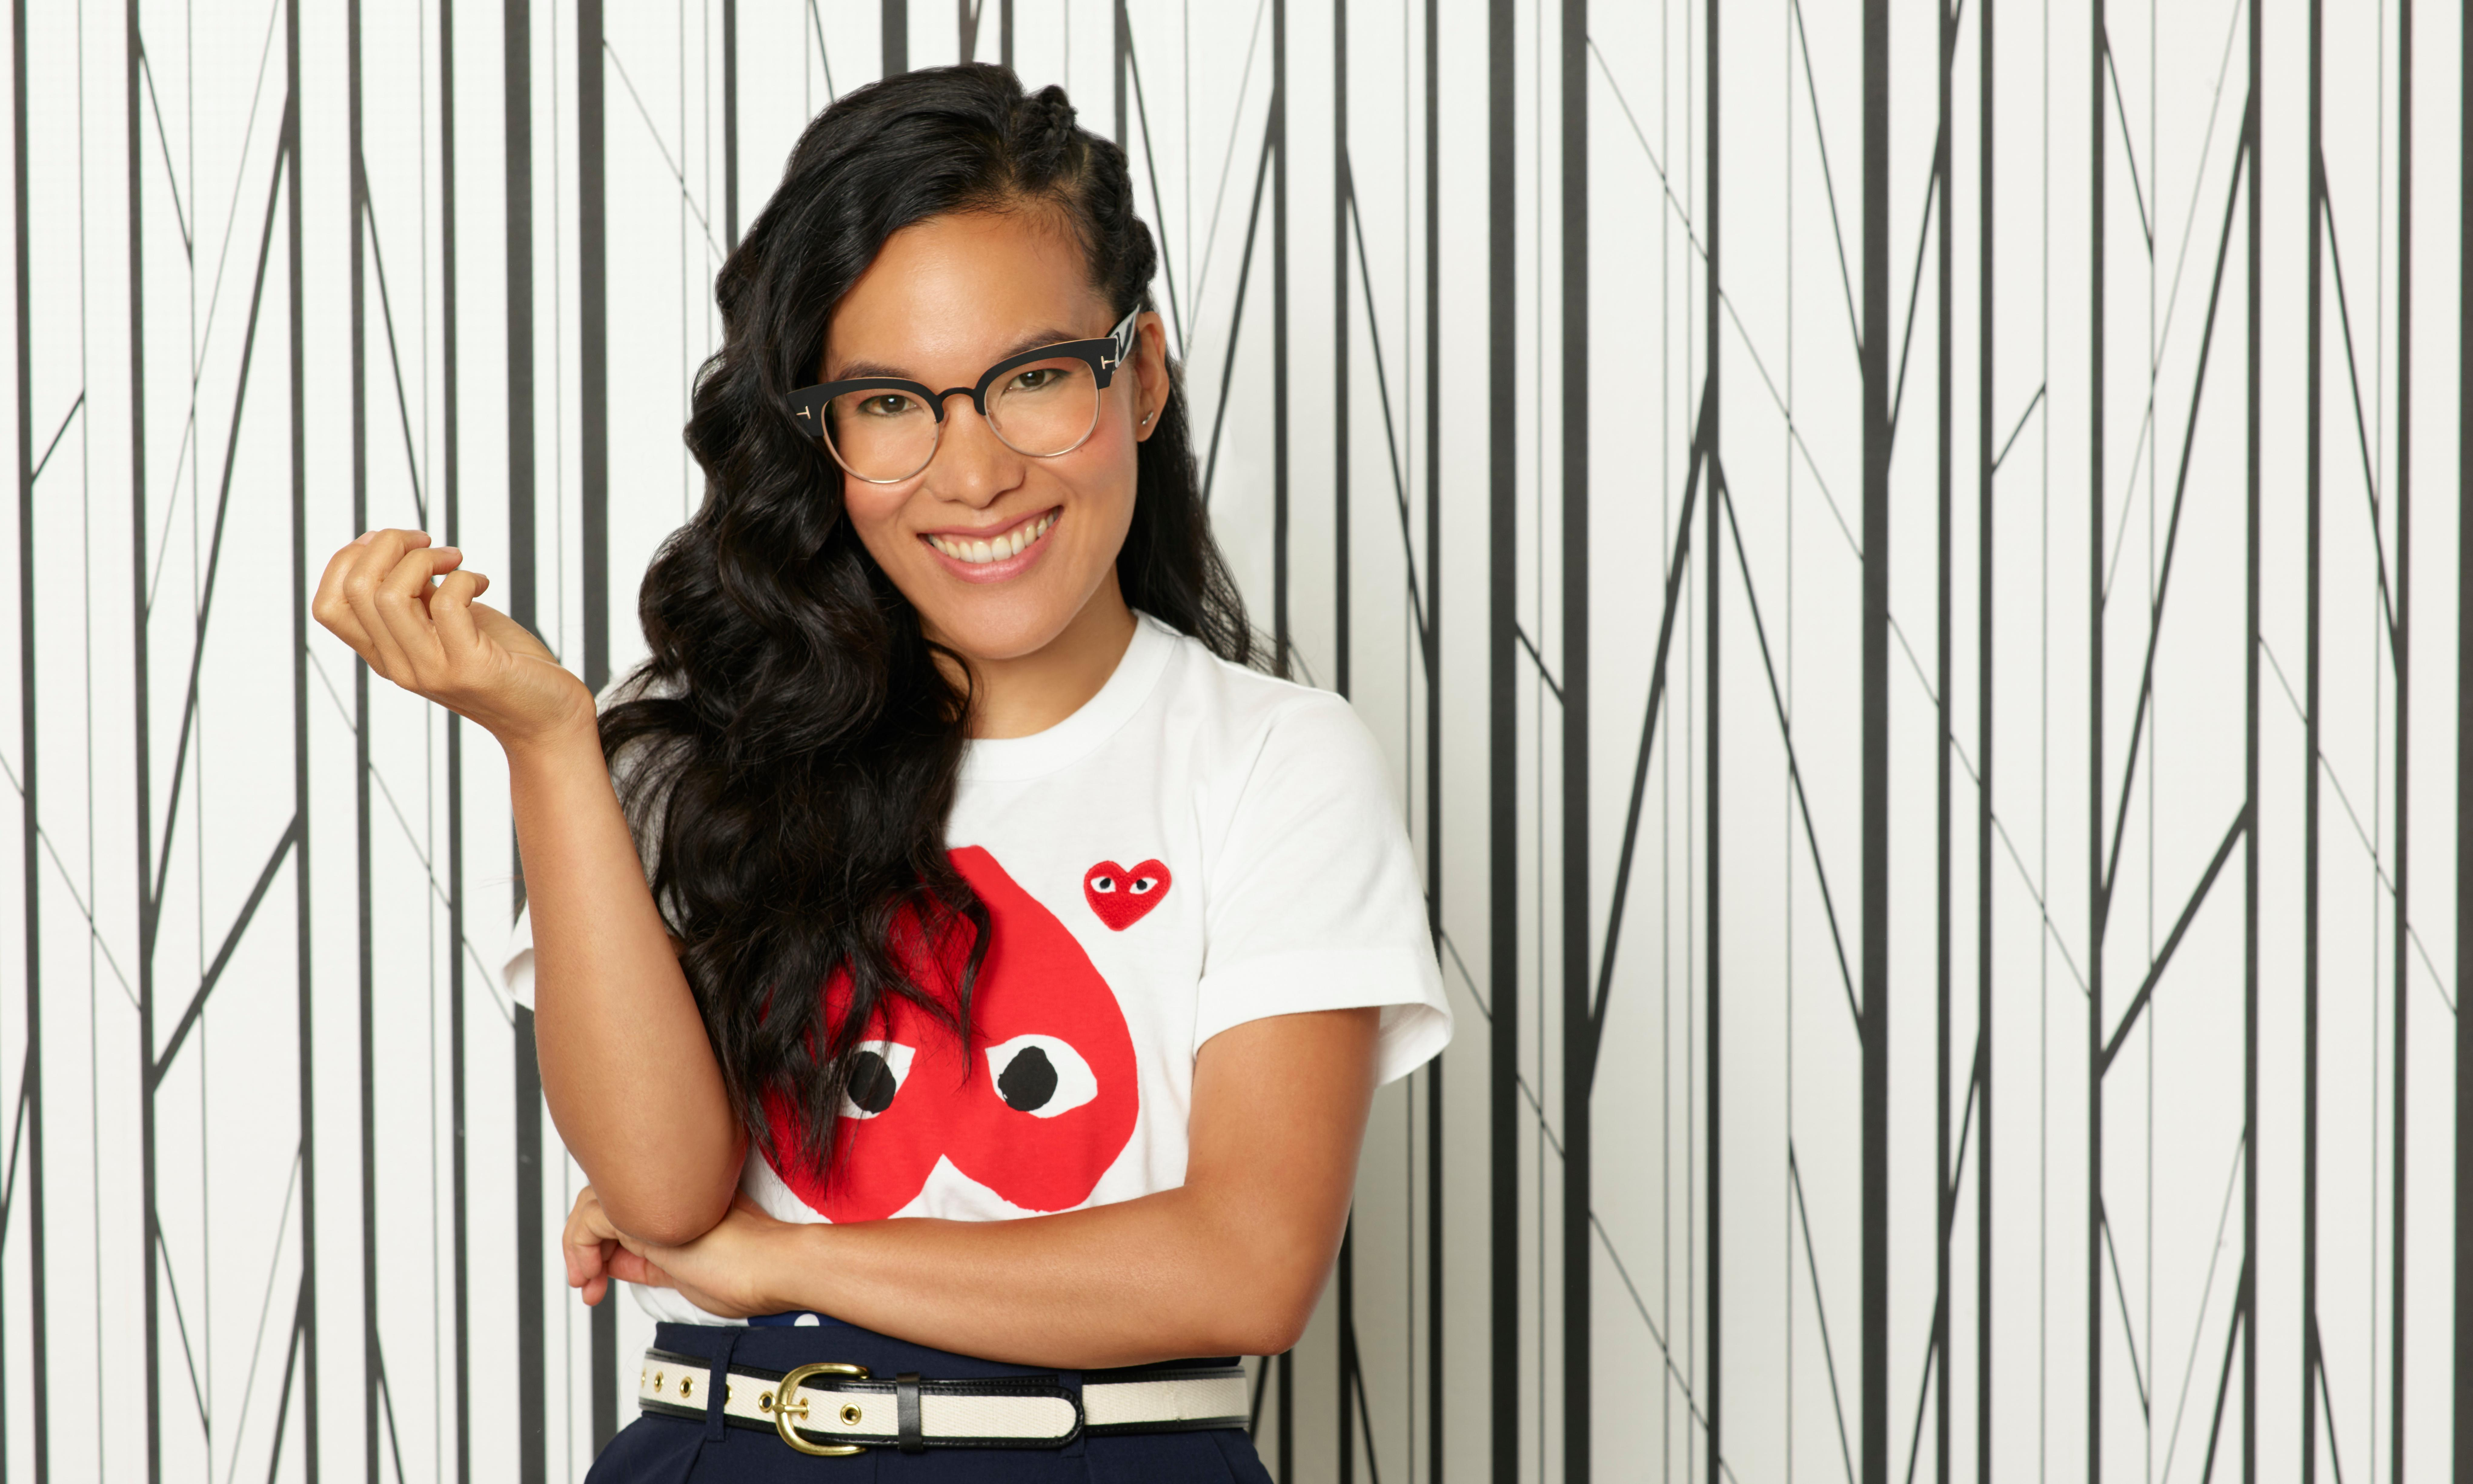 'God, I was disgusting!' – Ali Wong on why women's bodies are the last taboo